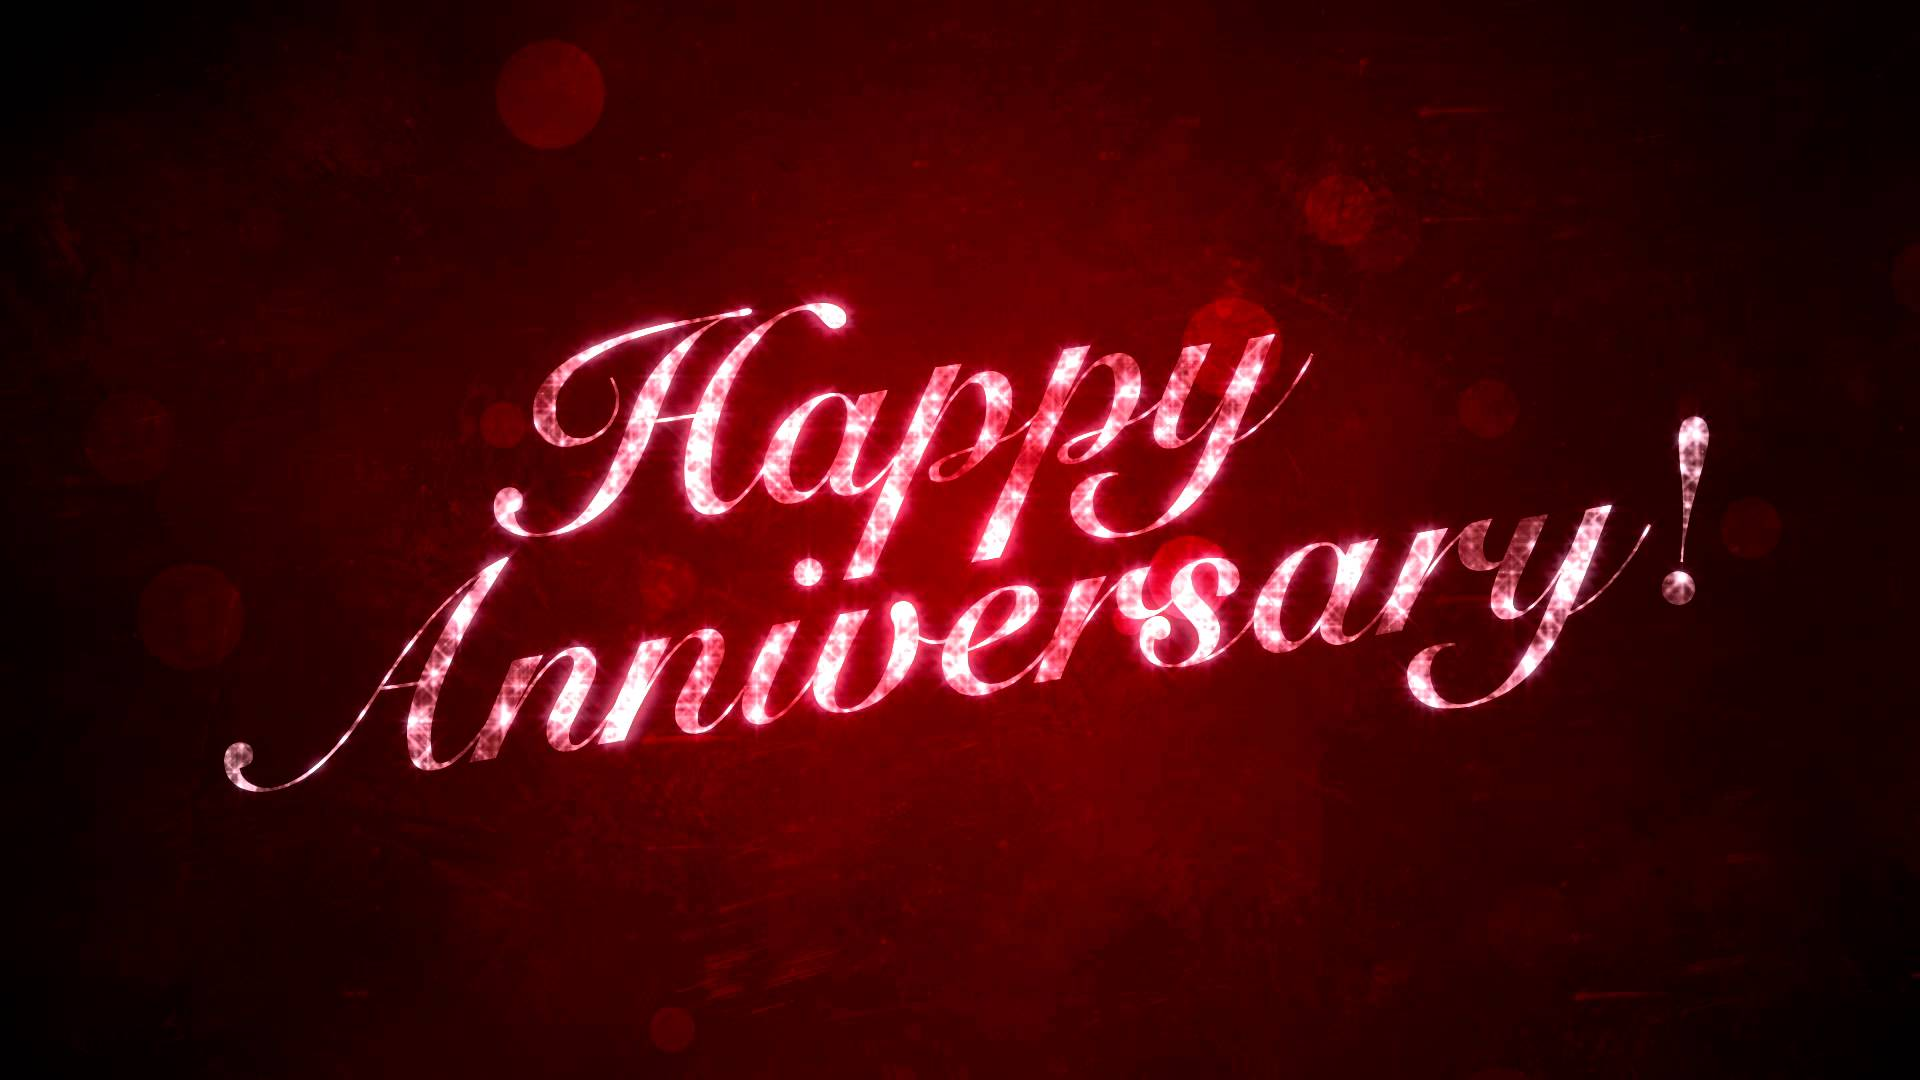 Marriage-Anniversary-Wallpapers-Images-Pics-Download